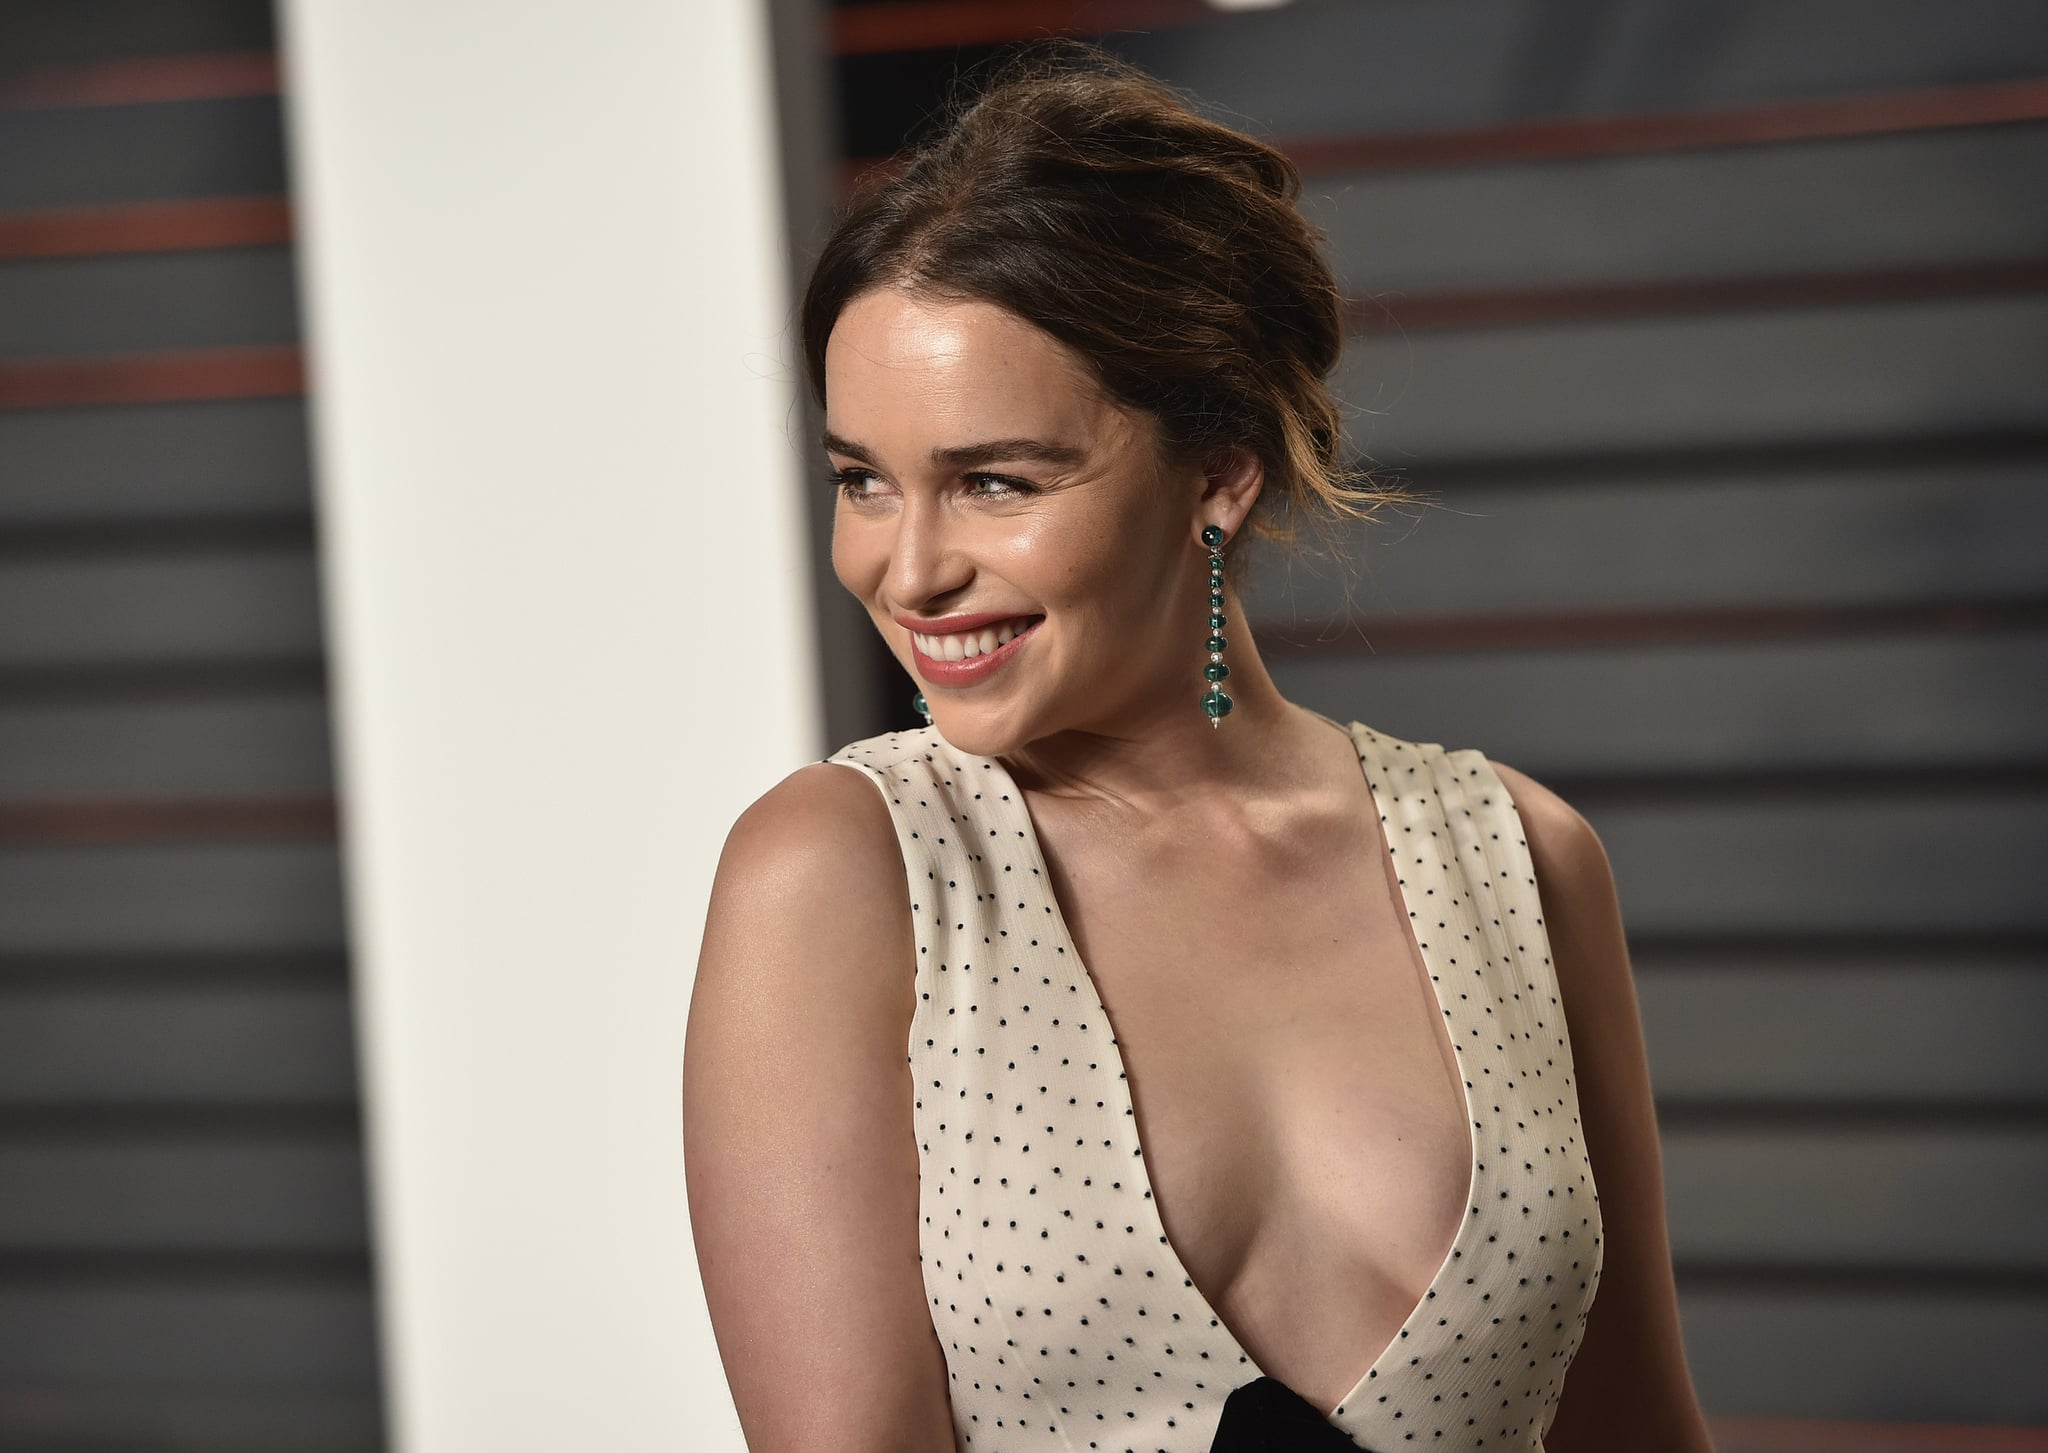 Celebrity Entertainment These Sexy Emilia Clarke Moments Will